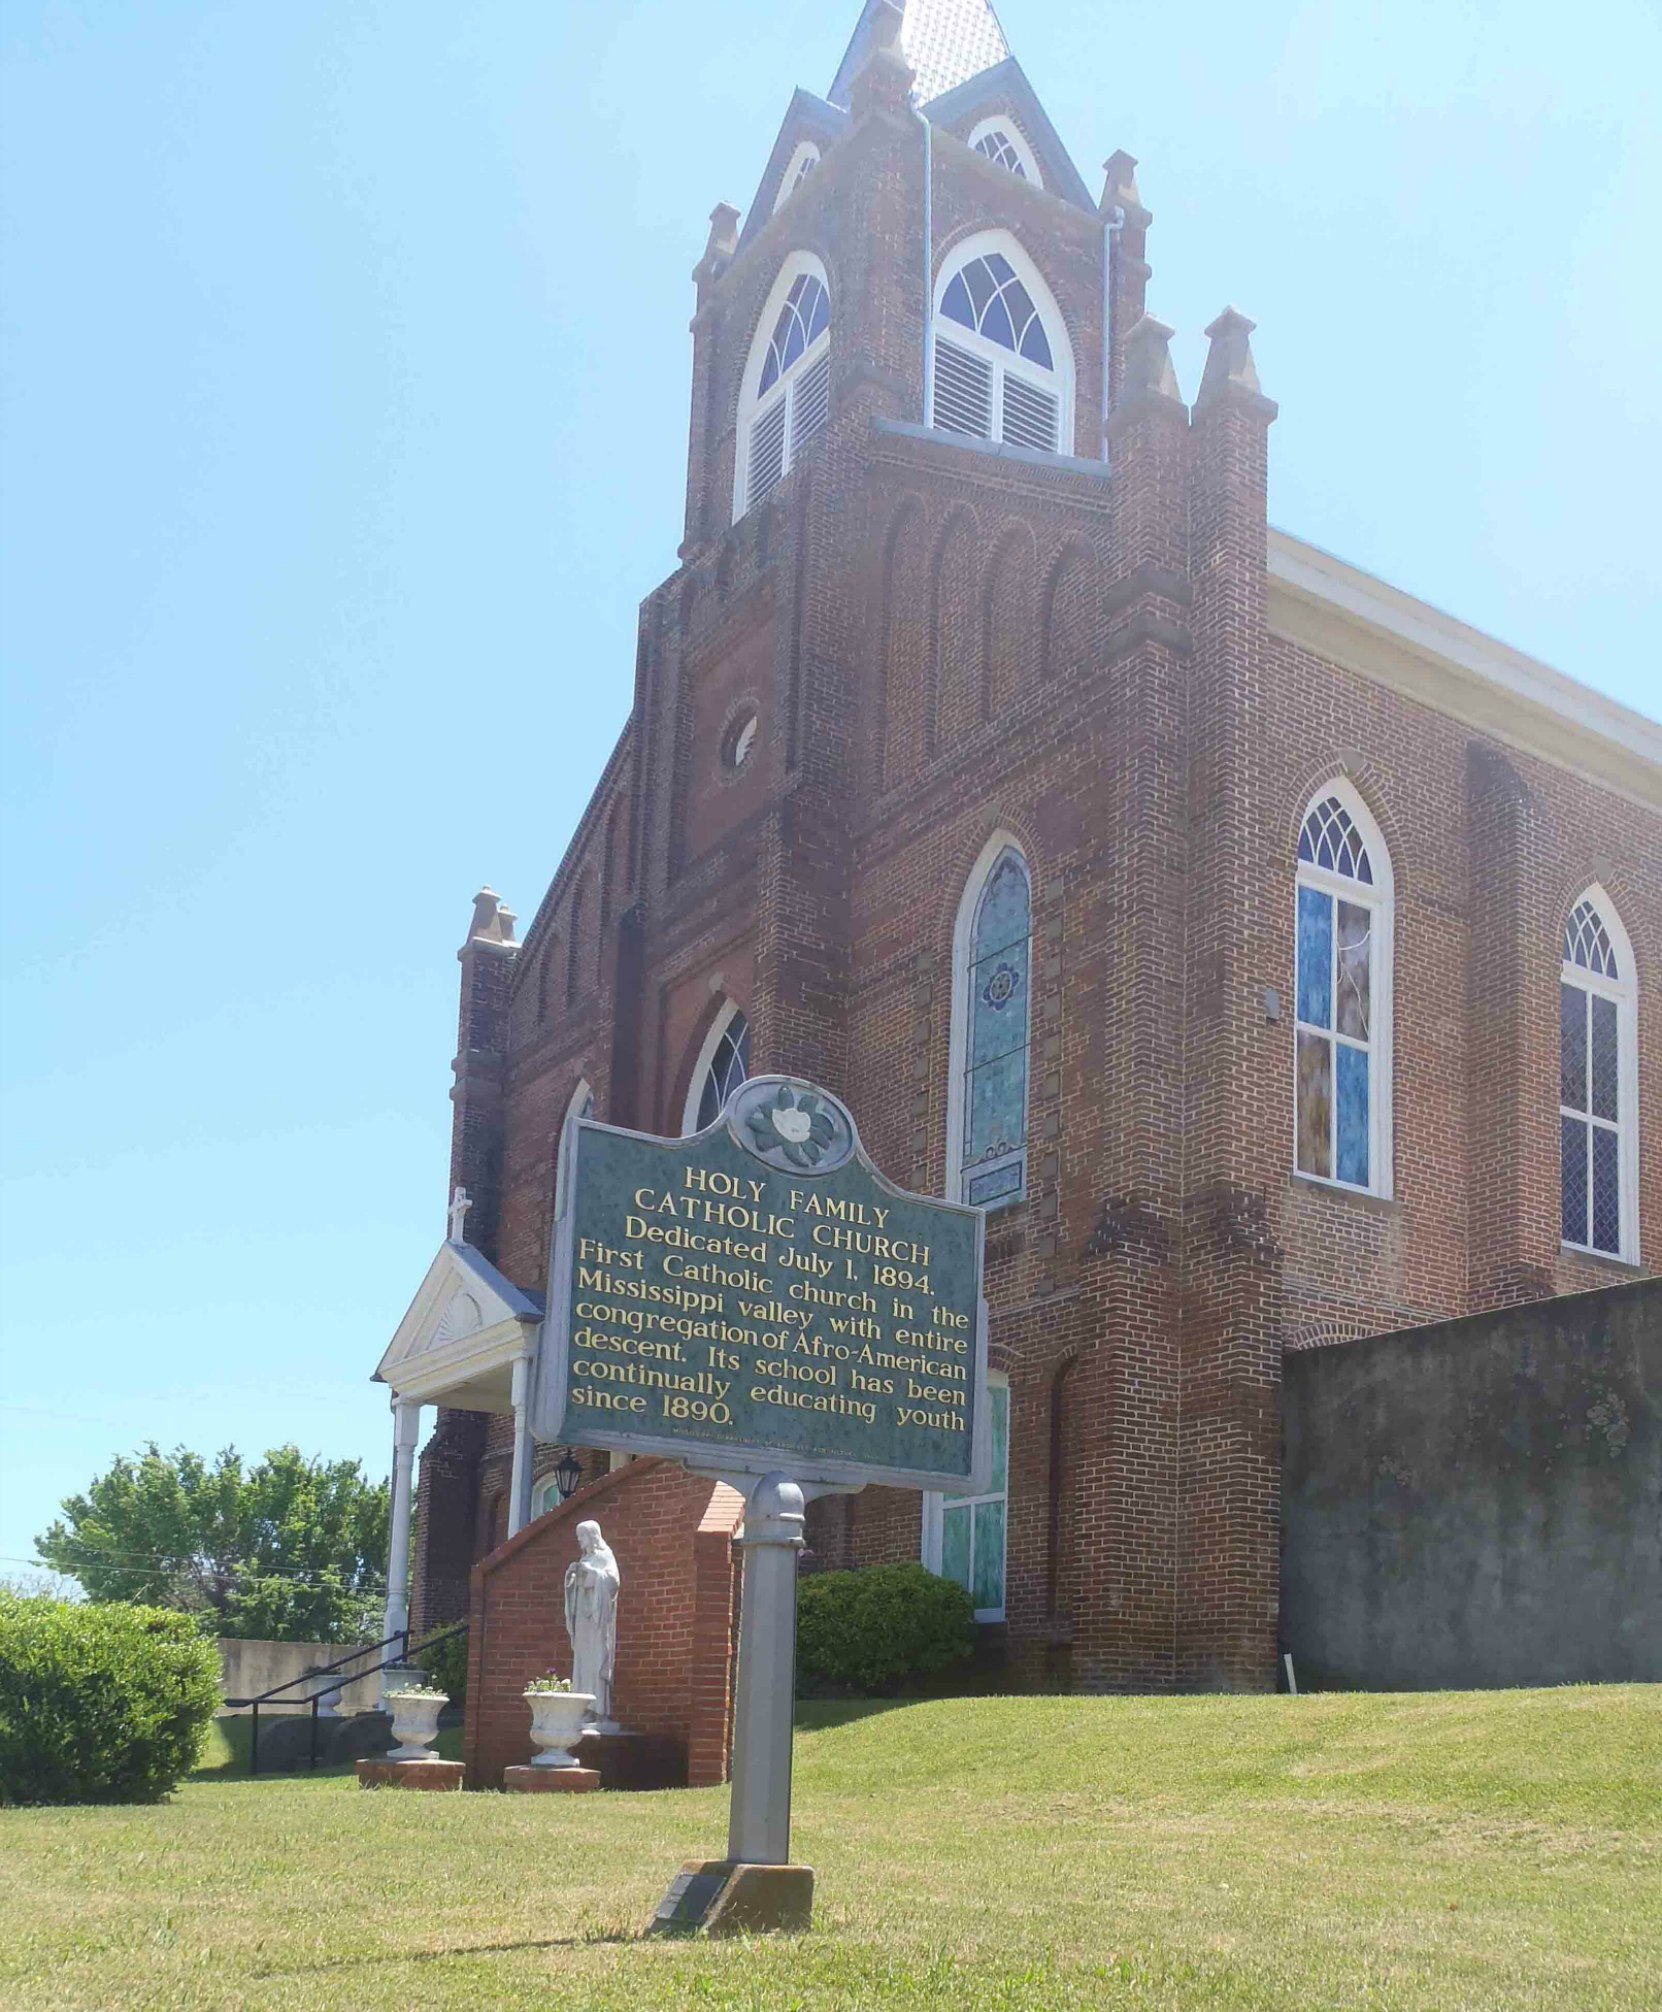 The Mississippi Department of Archives & History marker outside Holy Family Catholic Church, Natchez, Mississippi